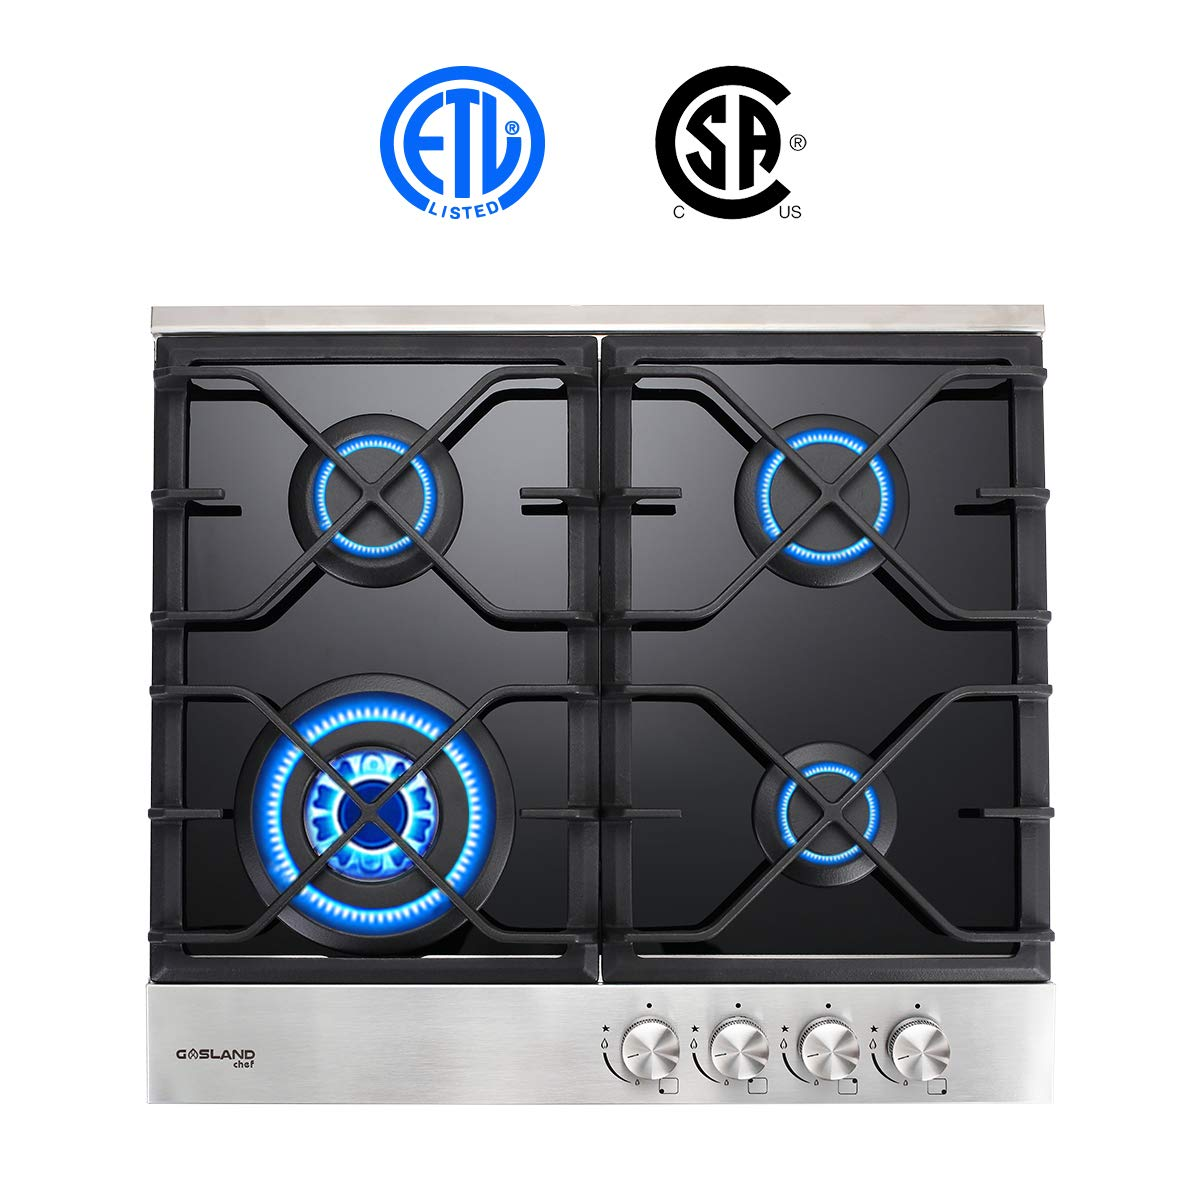 Gas Cooktop, Gasland Chef GH60BF 24'' 4 Burner Built-in Gas Cooktops, Black Tempered Glass LPG Natural Gas Hob, 24 inch 4-burner Gas Stove Top, ETL Safety Certified, Thermocouple Protection by GASLAND